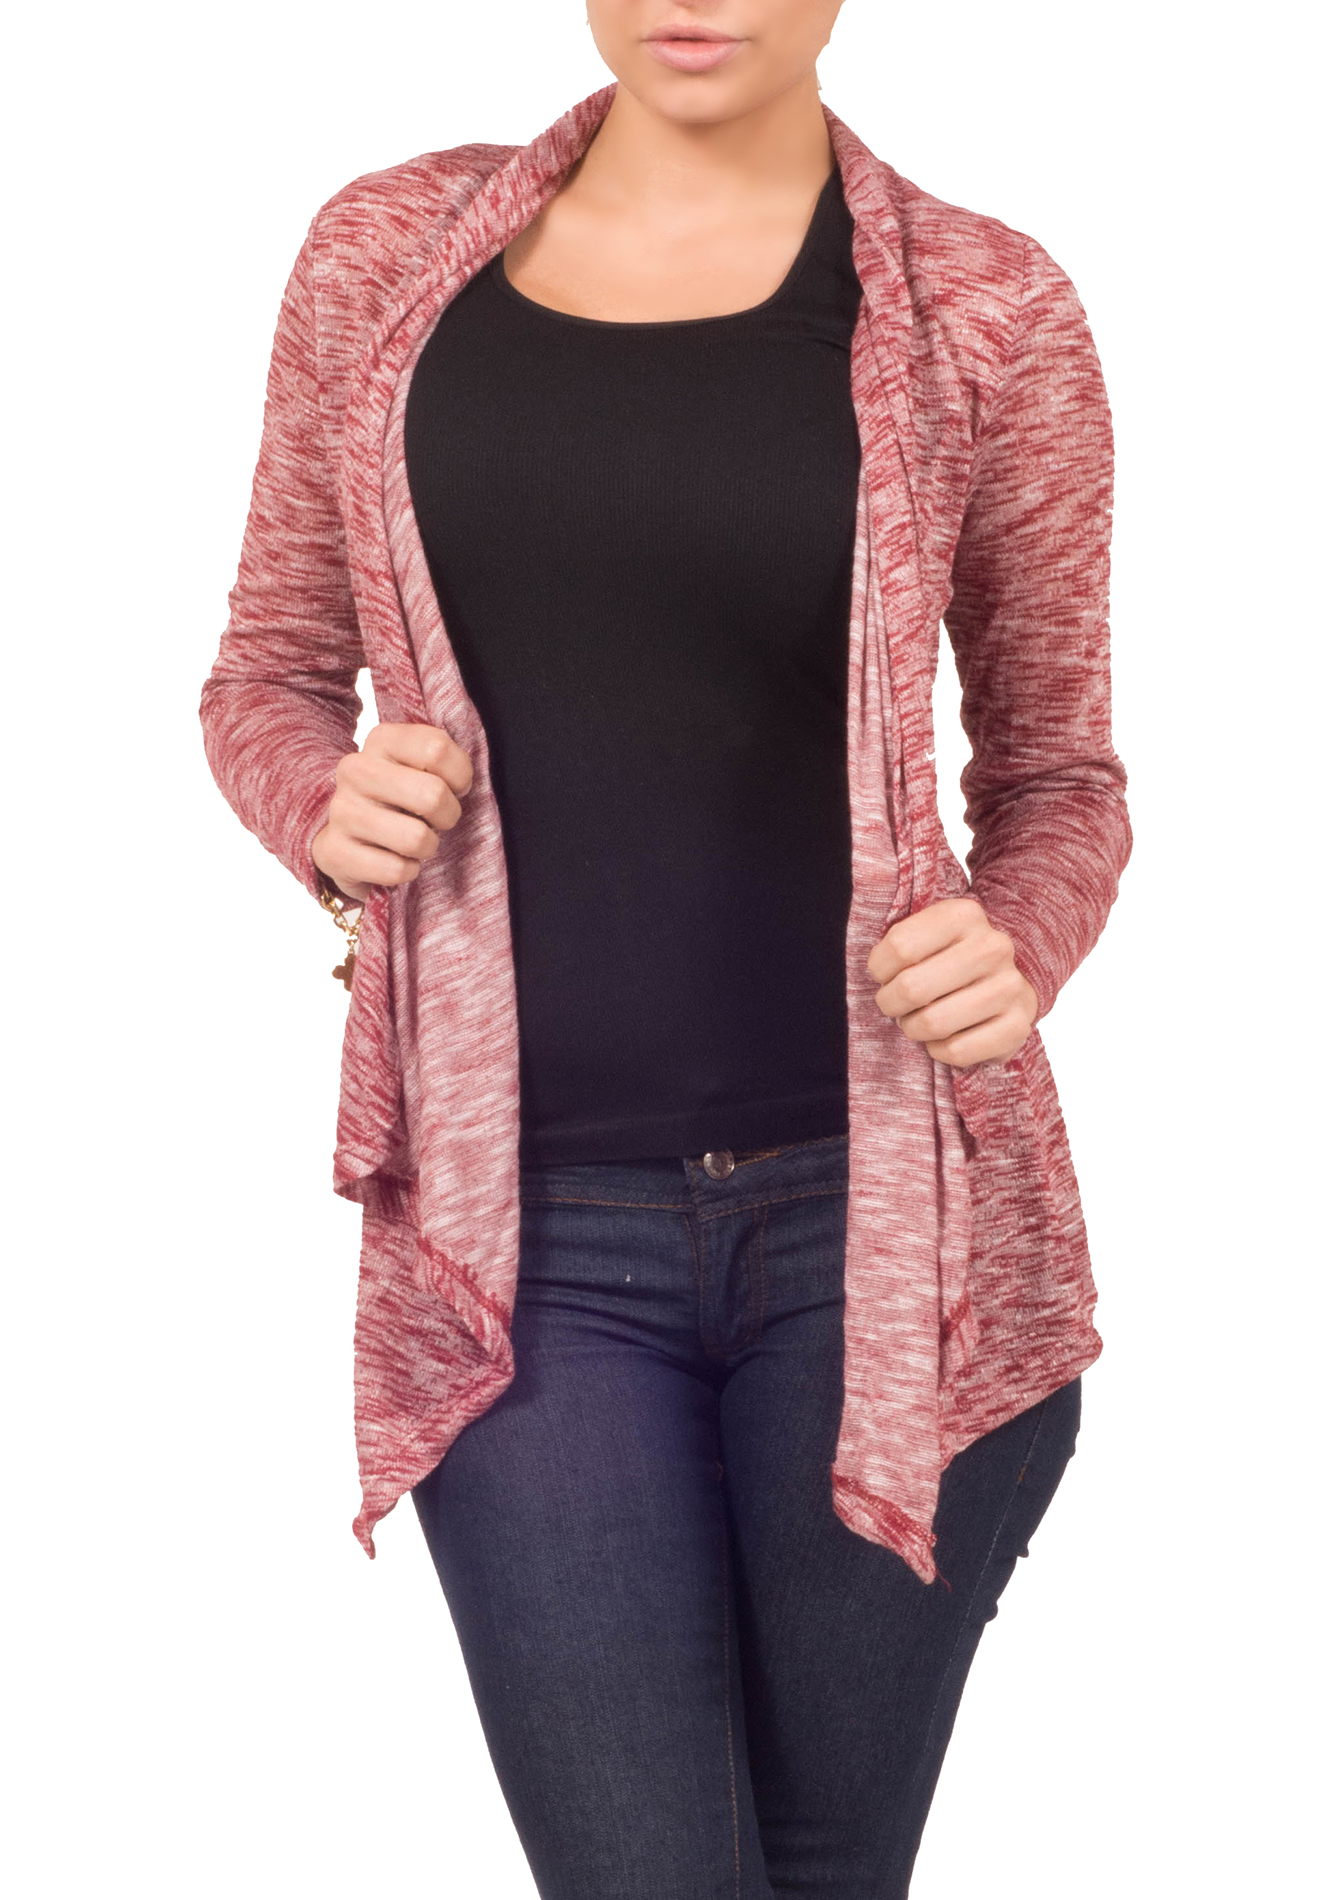 Hot From Hollywood Womens Sweater Knit Assymetrical Open Front Long Sleeve Drape Casual Cardigan at Sears.com